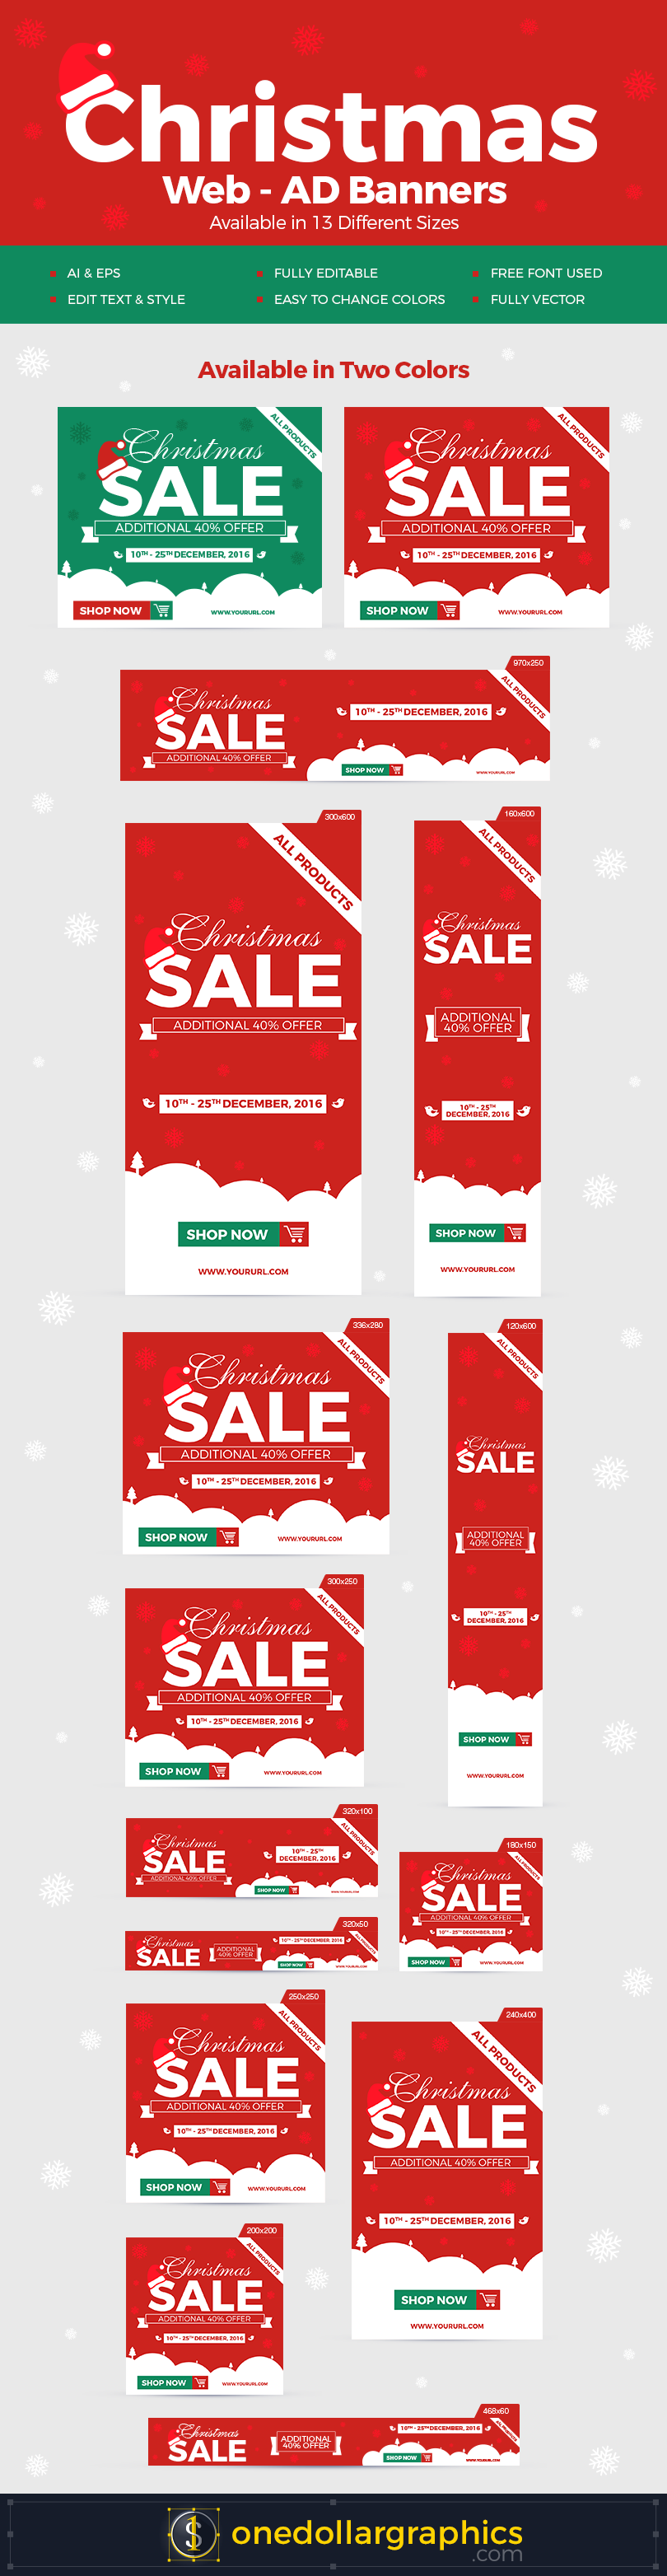 free-christmas-web-ad-banners-in-13-different-sizes